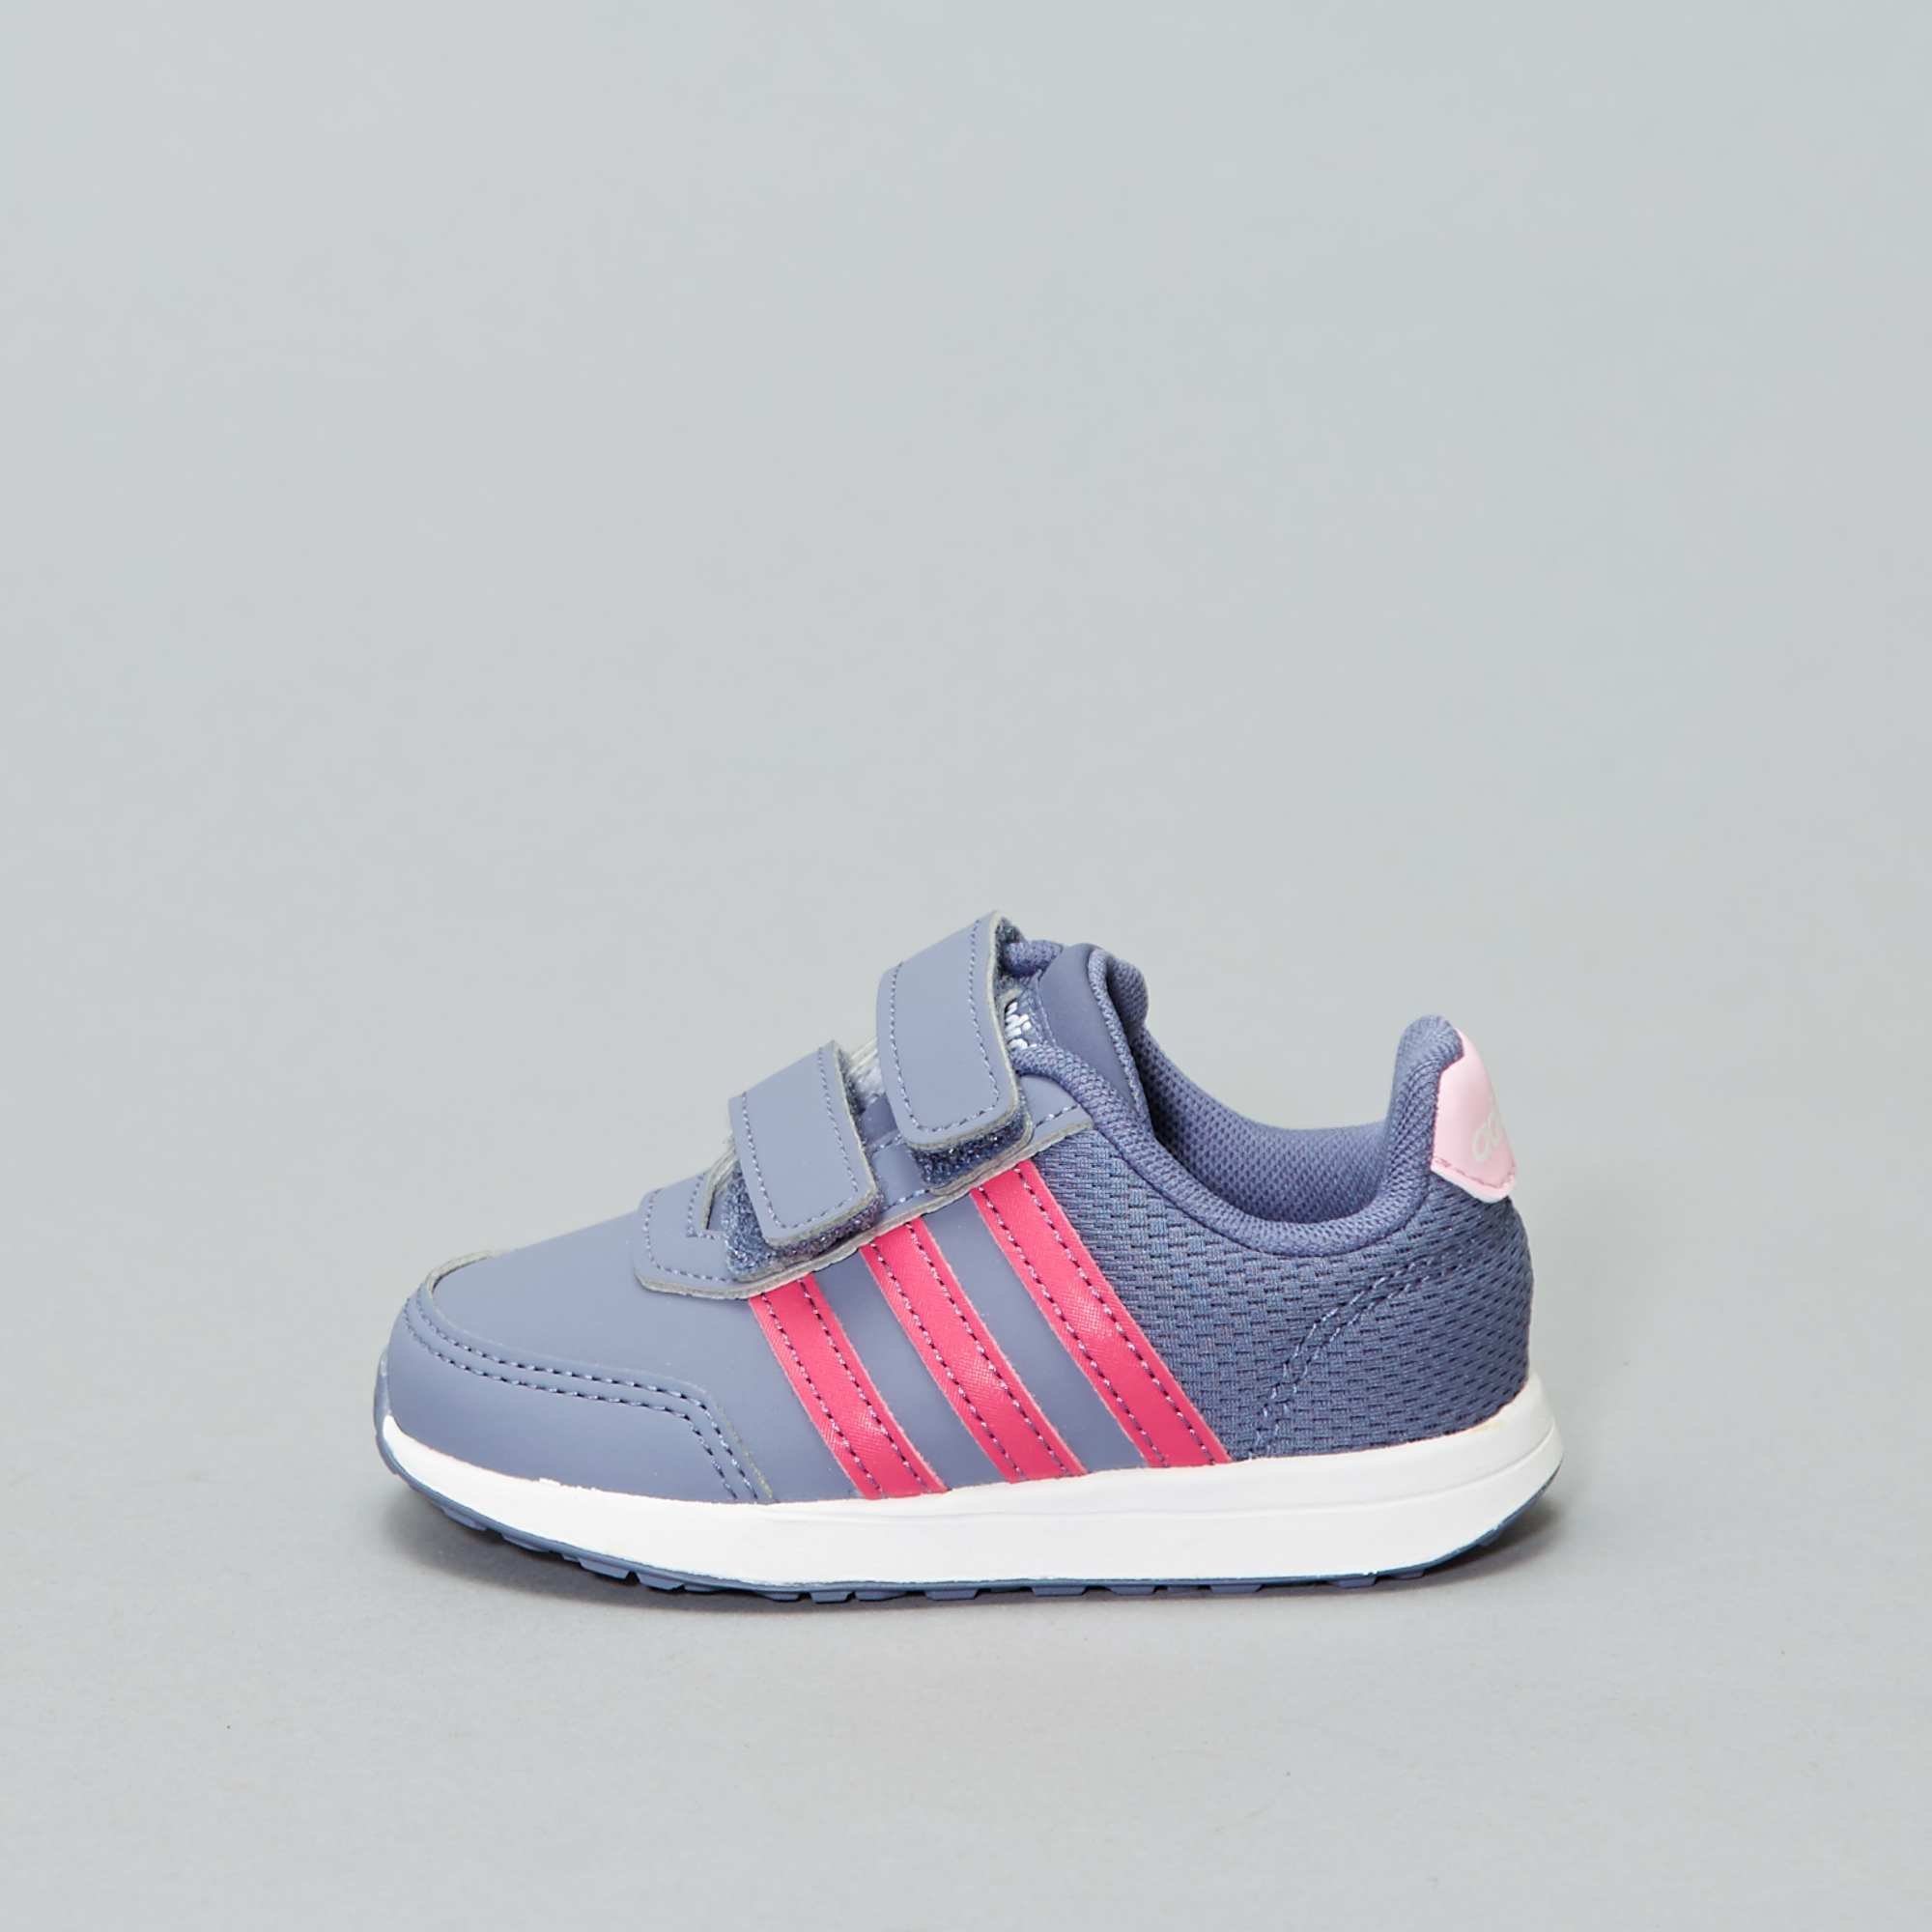 'adidas' Switch Violetrose Chaussures 2' Basses Baskets 'vs Gris IEDW9YHbe2